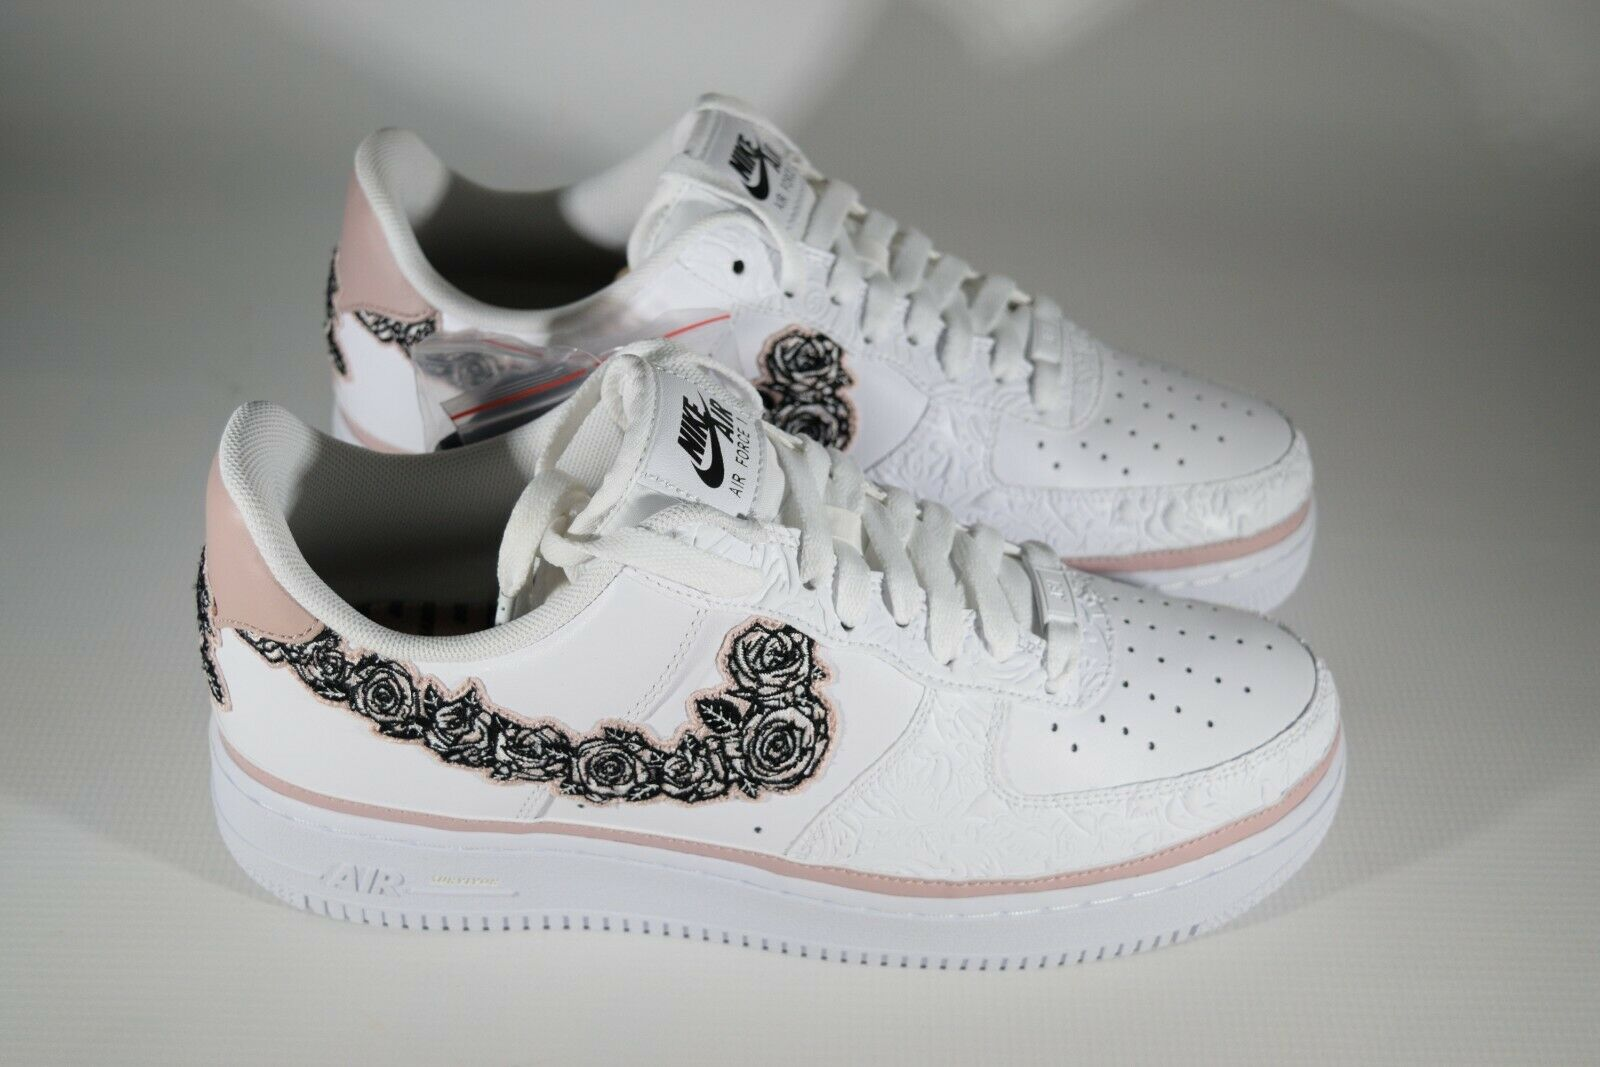 Nike Air Force 1 Low Doernbecher 2019